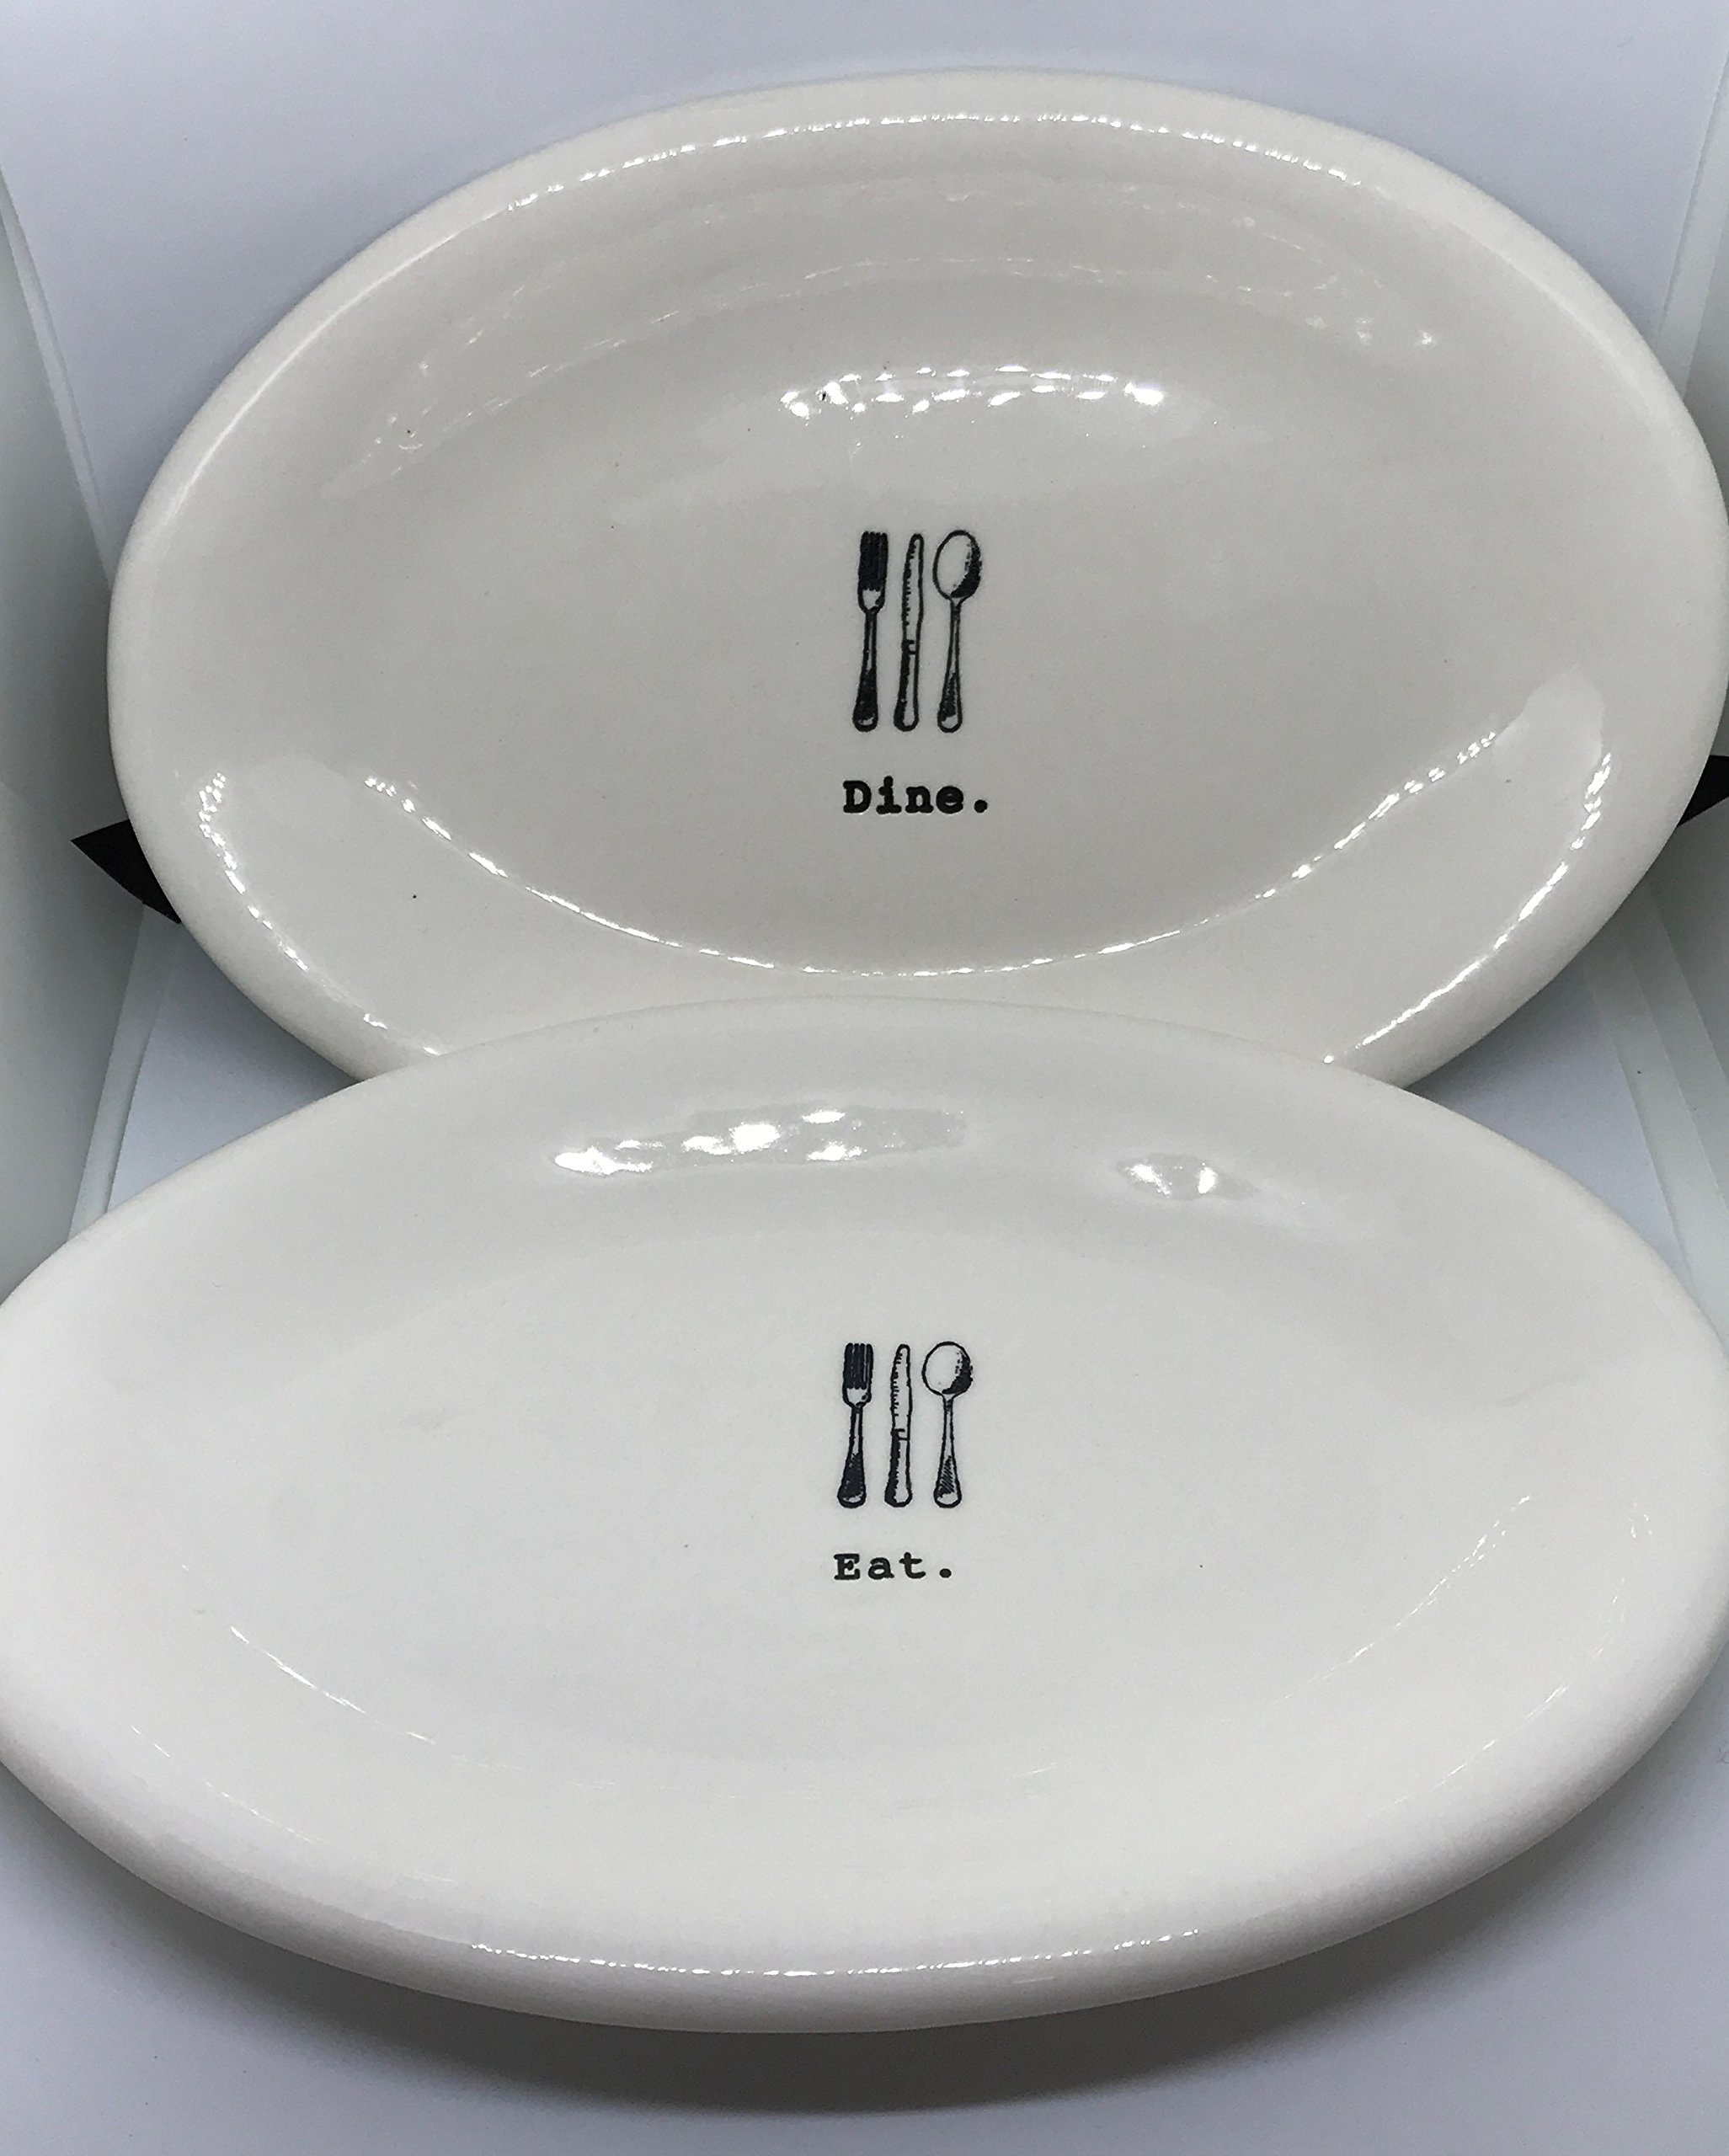 RARE Rae Dunn by Magenta Eat and Dine in typeset with fork knife and spoon 8 inch snack platter dish